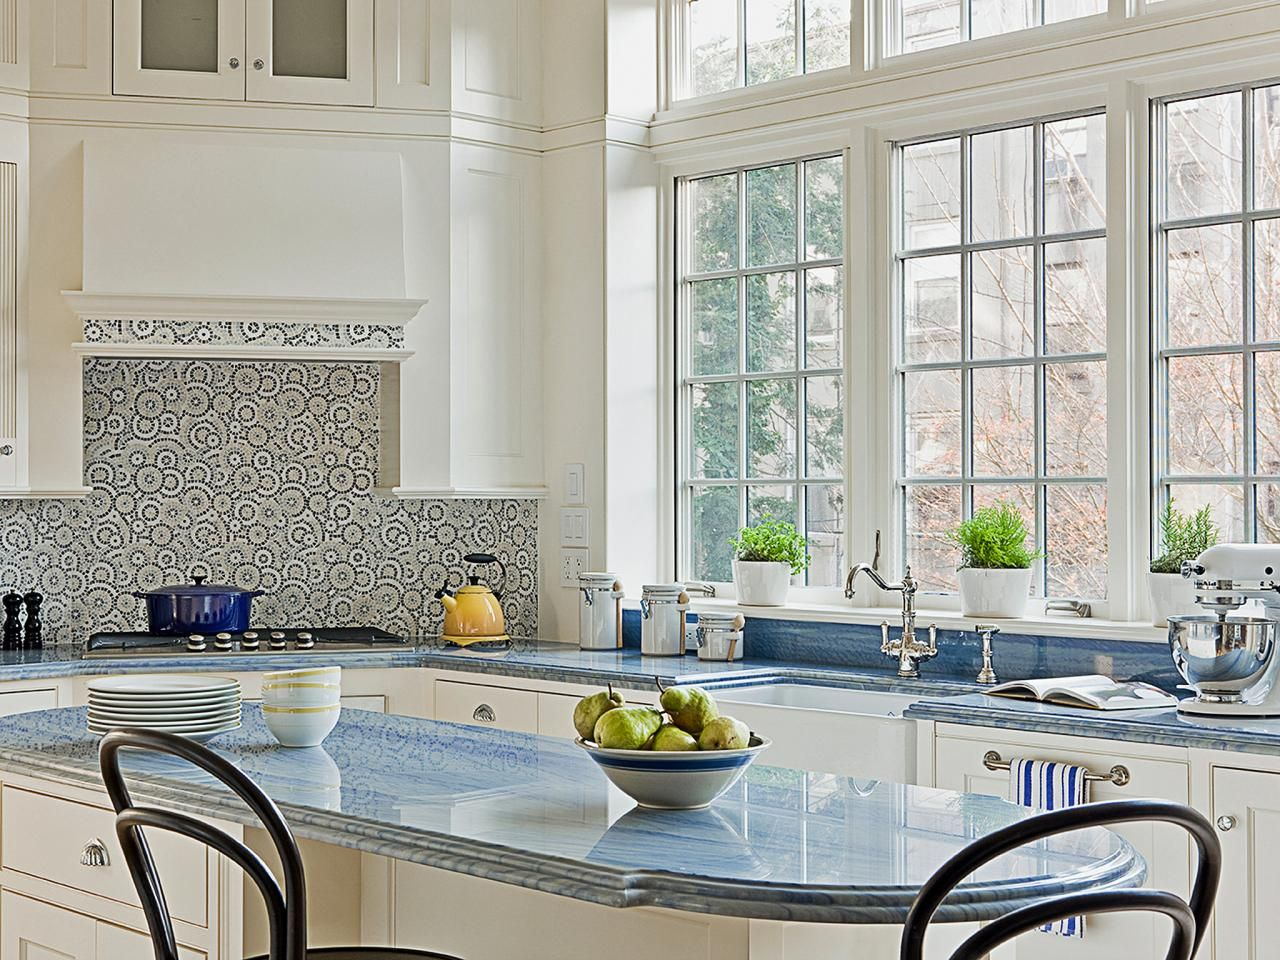 10 high-end kitchen countertop choices | shaker style, white